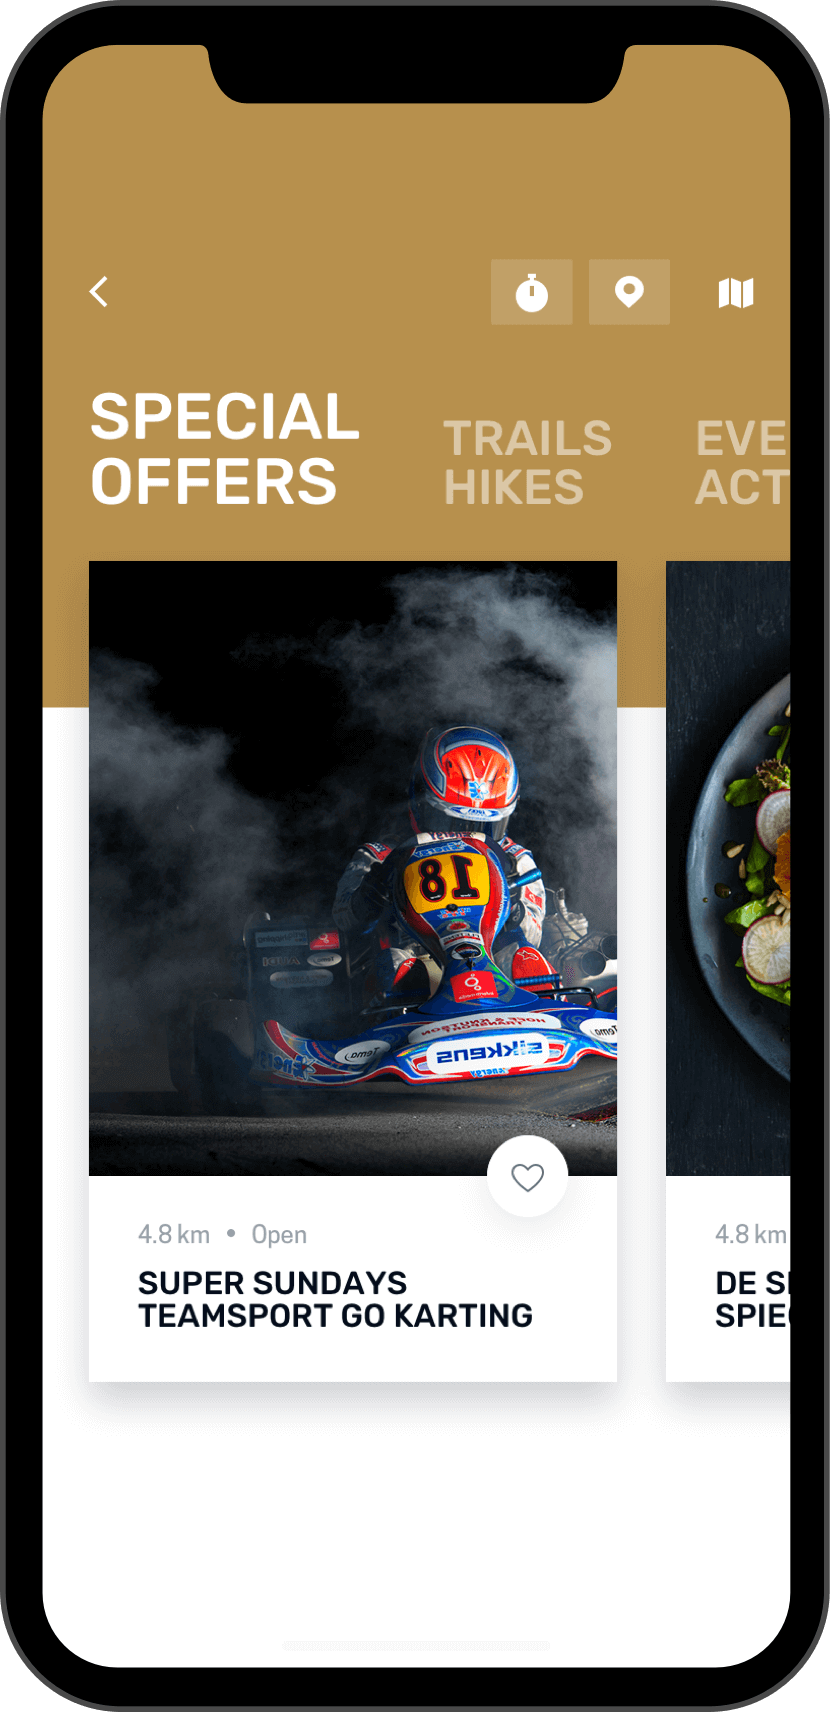 Sydney west app special offers screen on phone